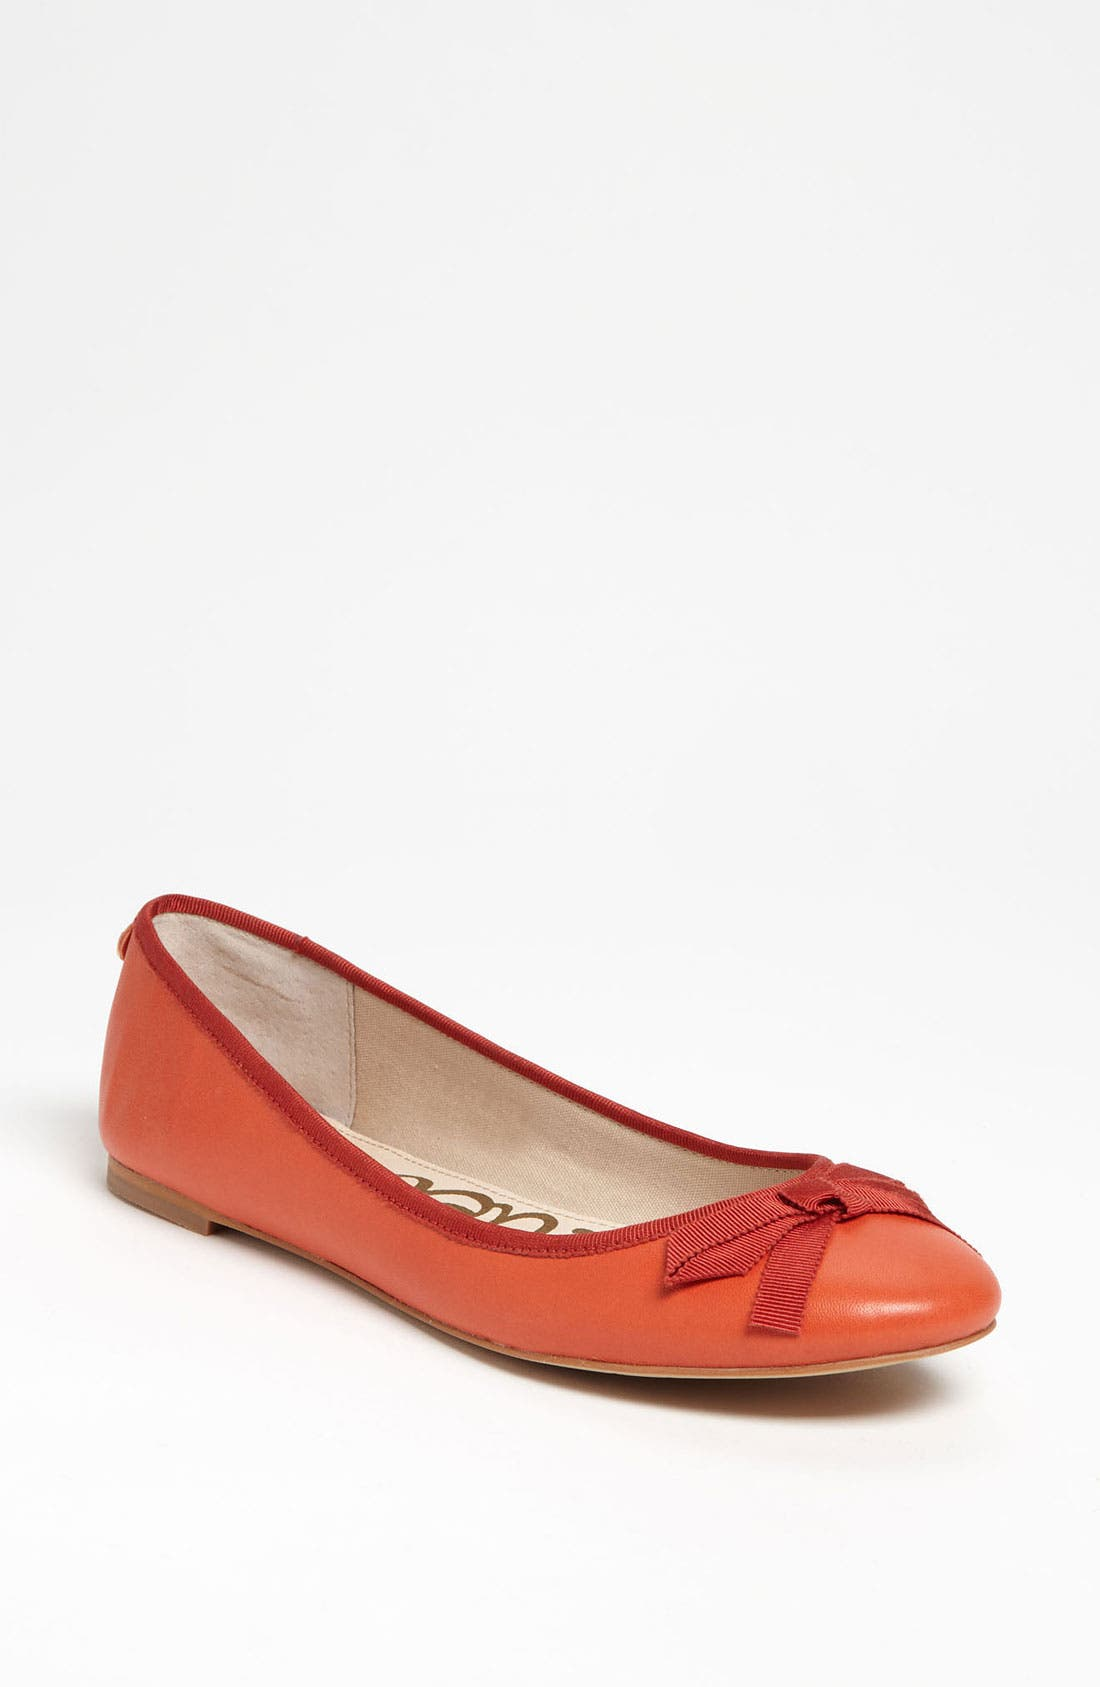 Alternate Image 1 Selected - Sam Edelman 'Milly' Flat